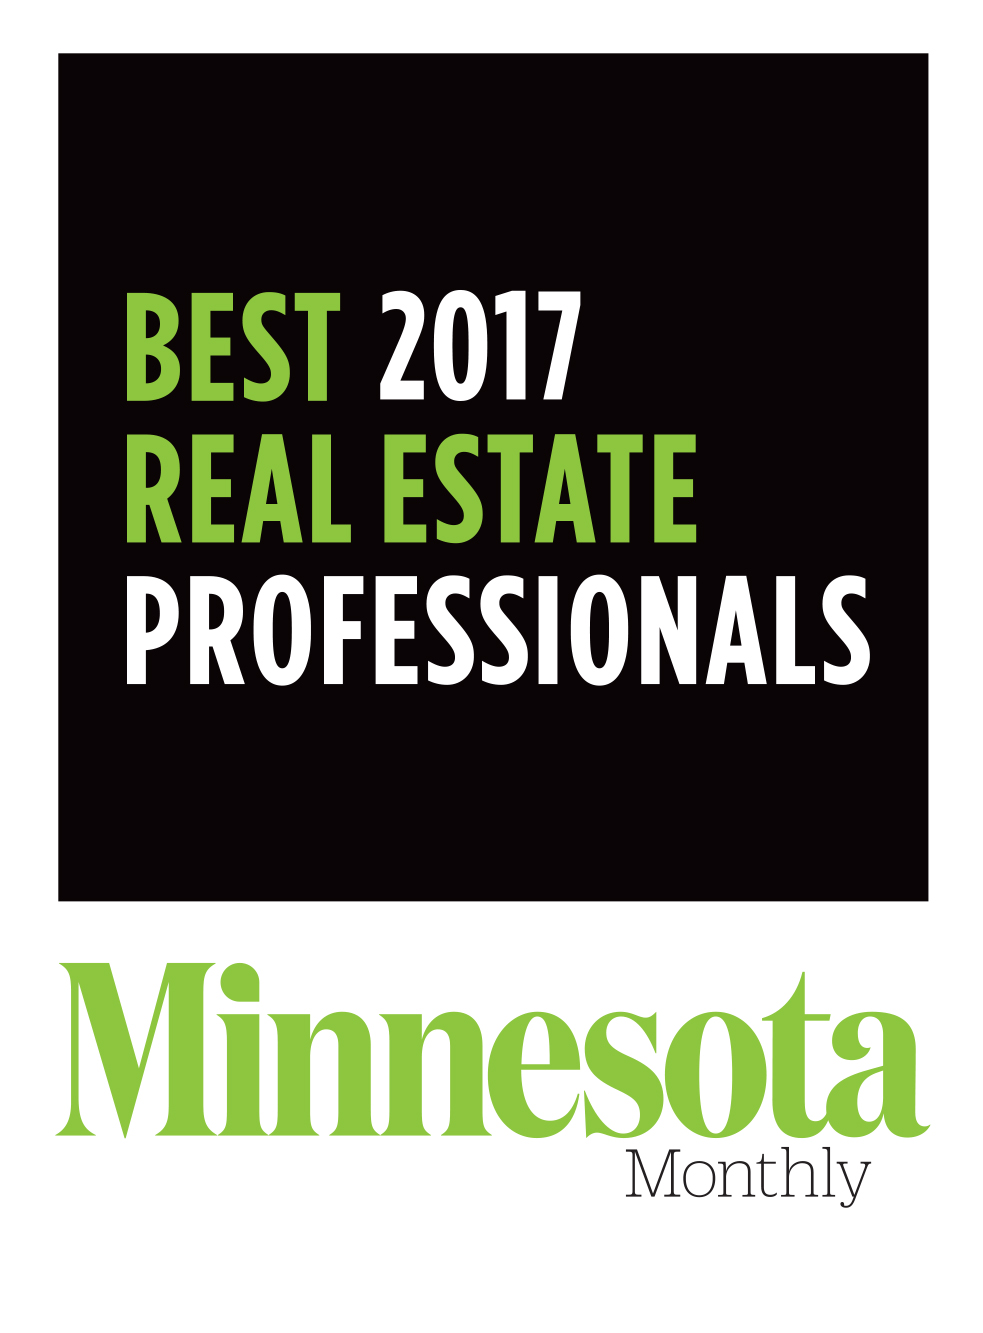 Vibrant Realty experts in Twin Cities Minnesota Homes, Real